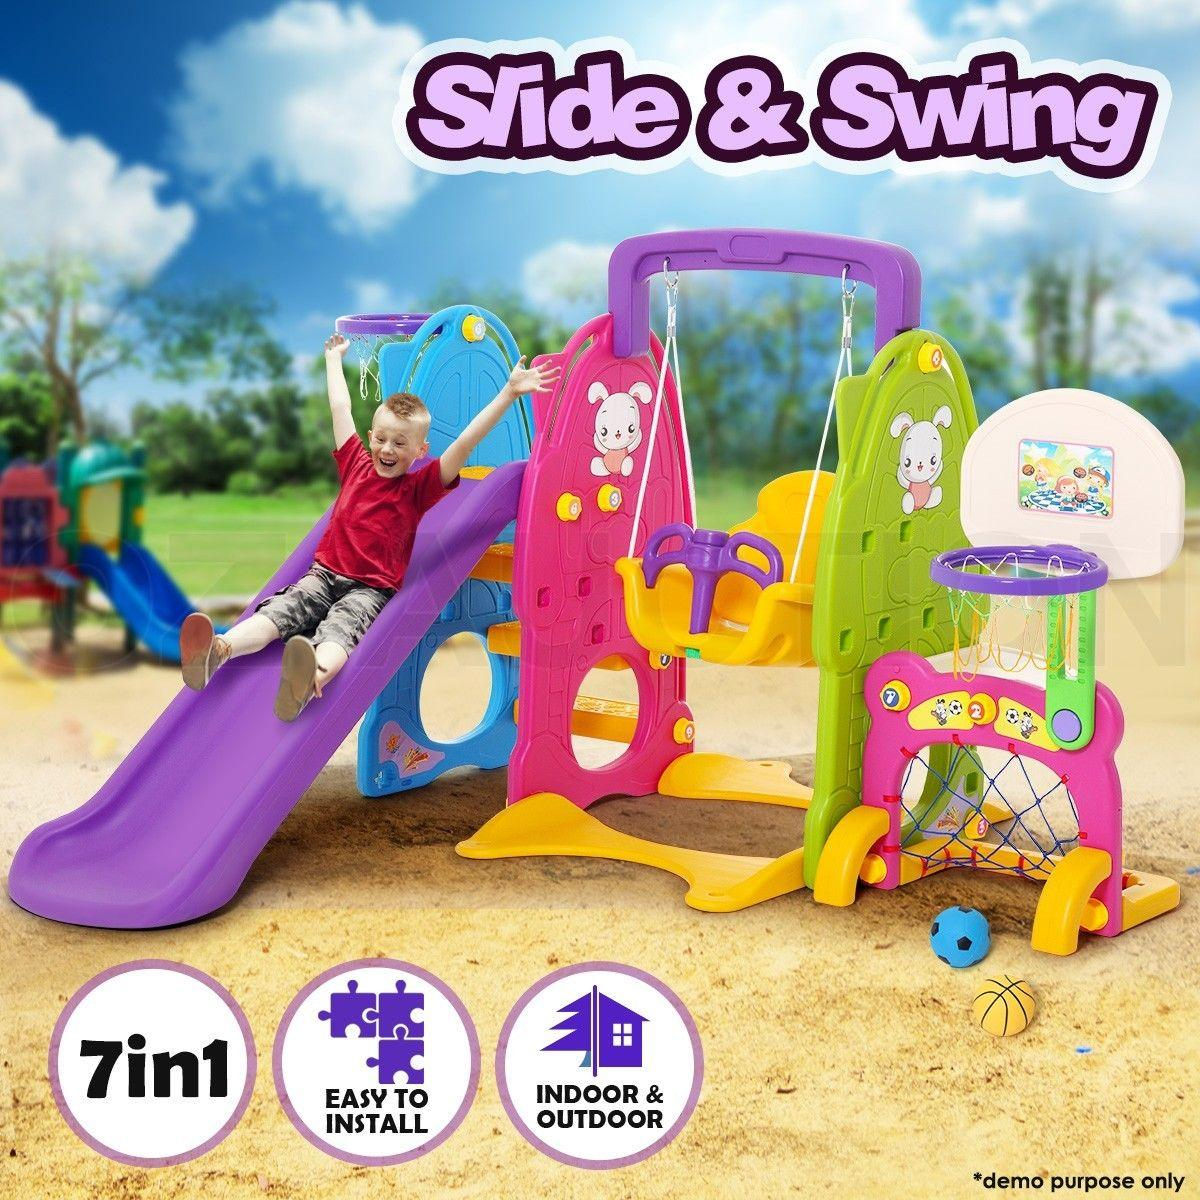 Toys & Hobbies Toy Sports Kids Climbing Rope Ladder Swing Indoor And Outdoor 5 Rungs Climb Hang Ladder For Kids Garden Game Outdoor Sports Toys A Complete Range Of Specifications